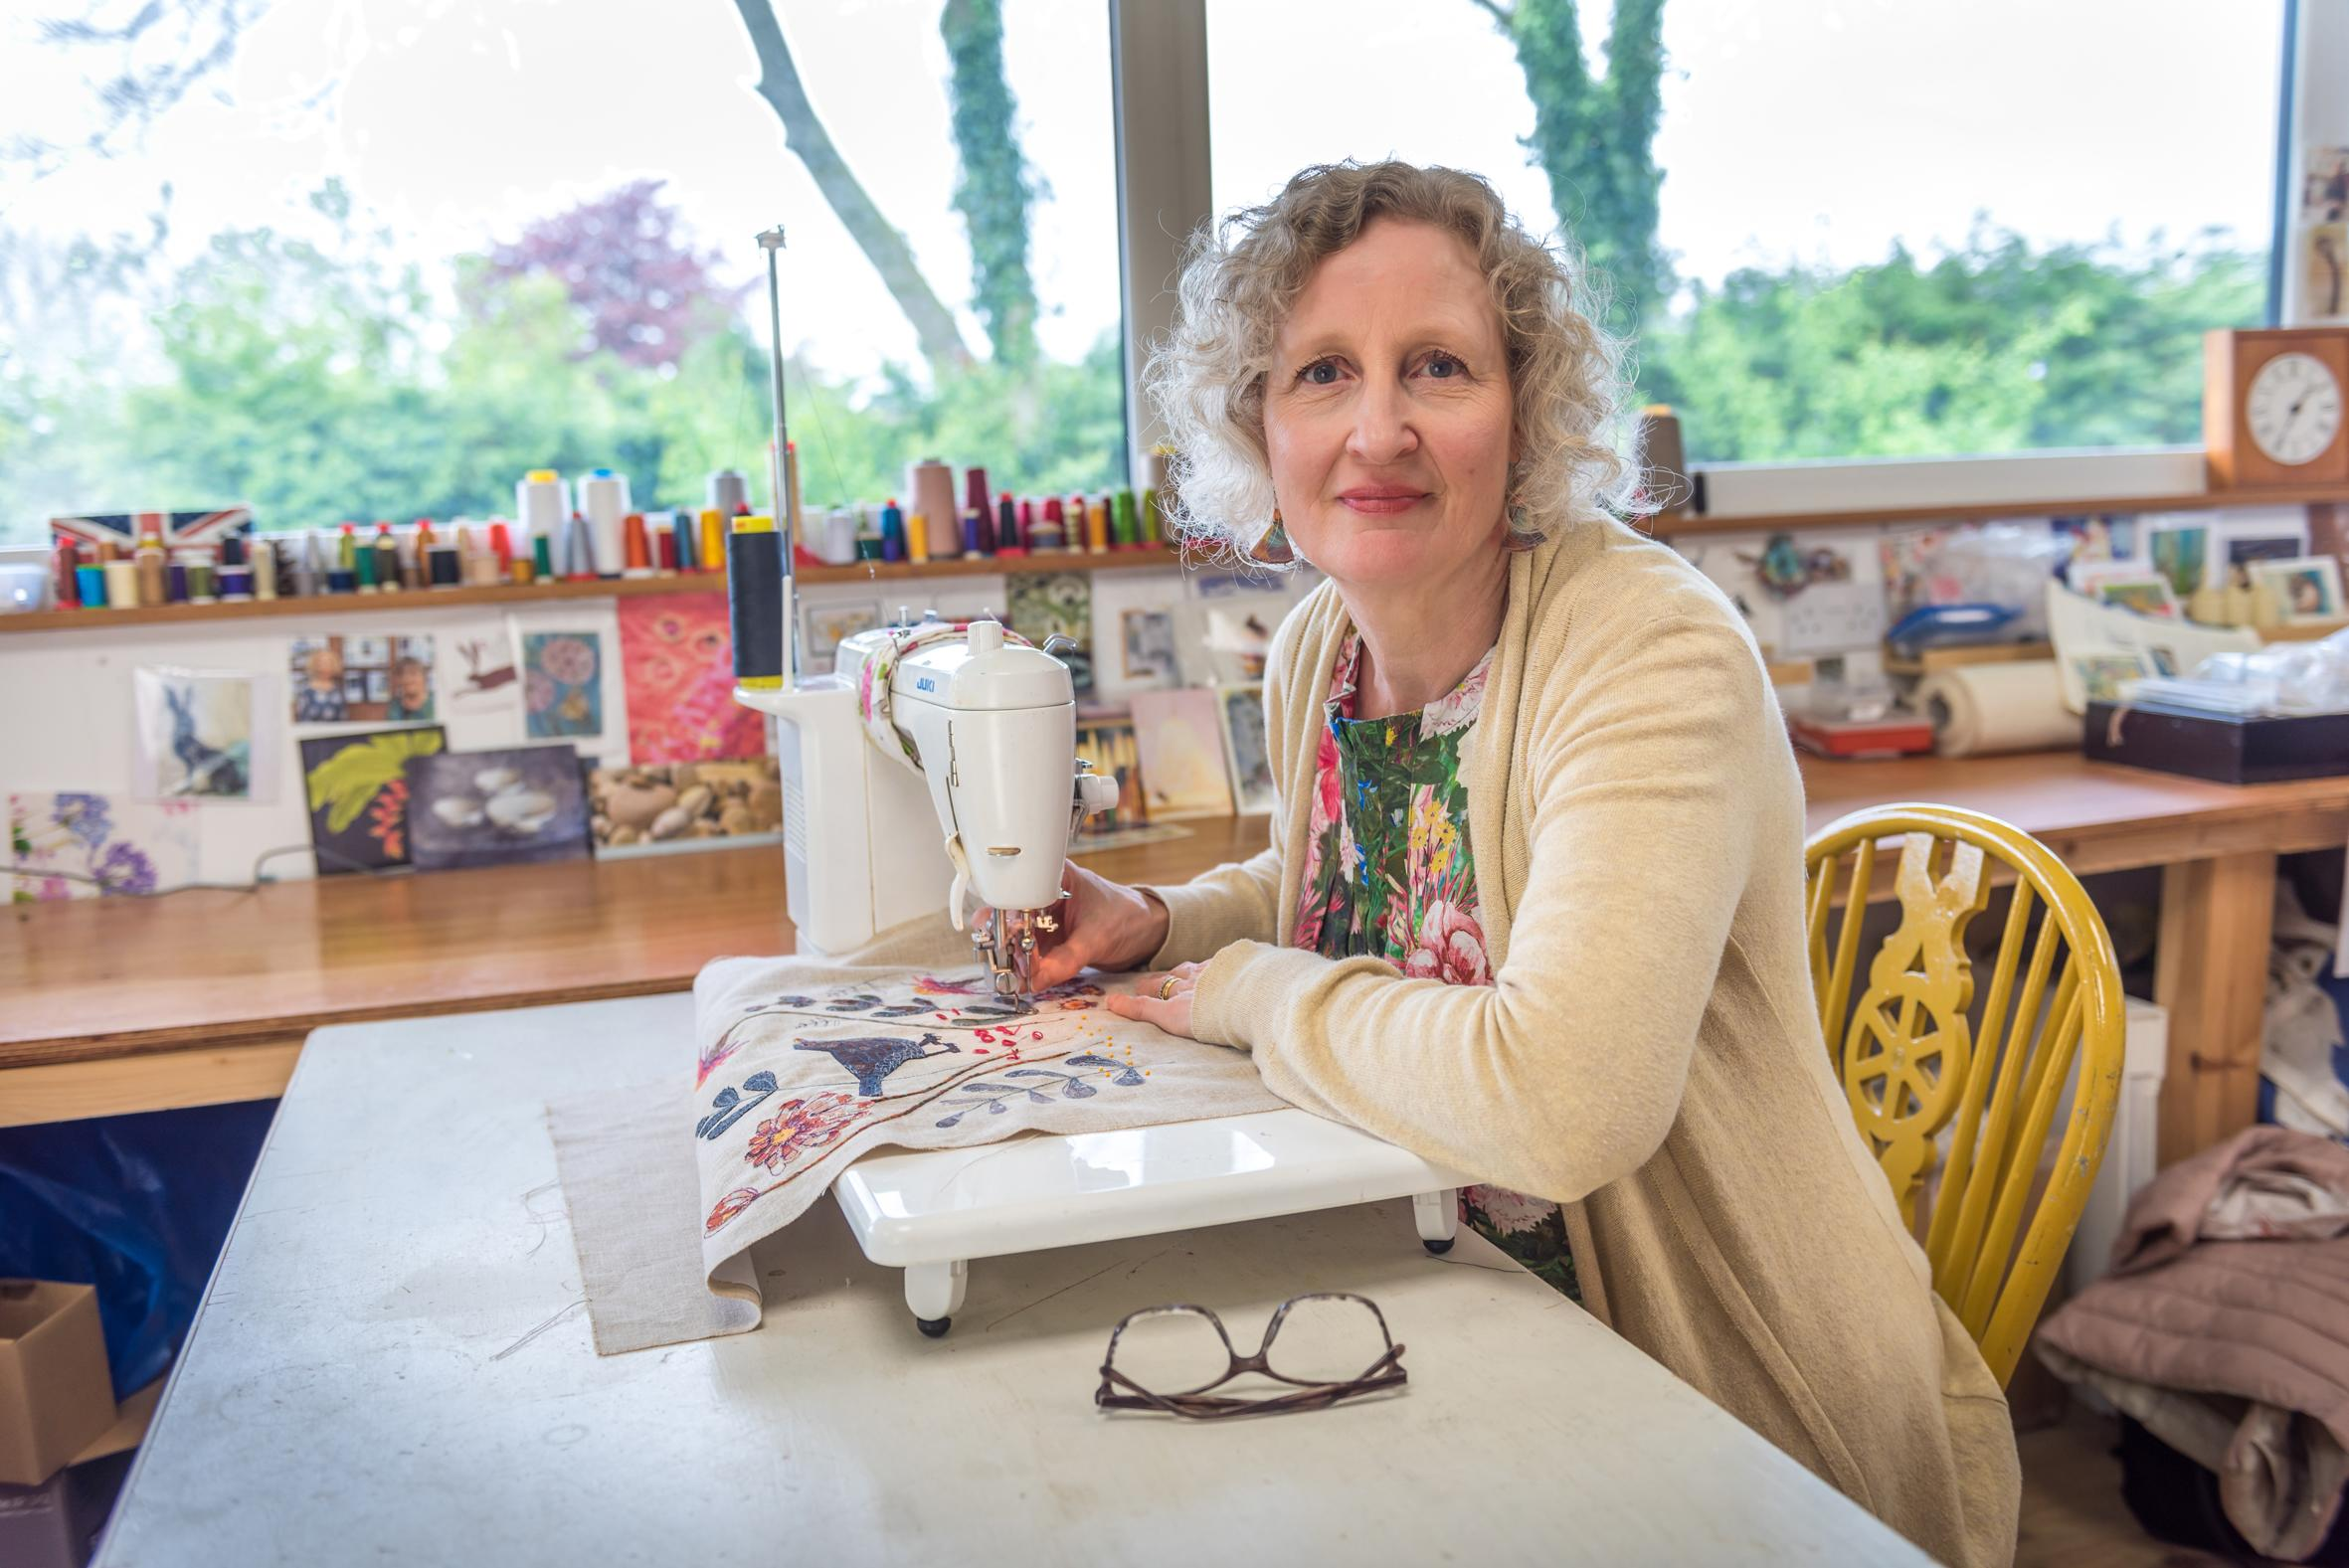 Jo Hill at her sewing machine, stitching a blackbird design and smiling at the camera